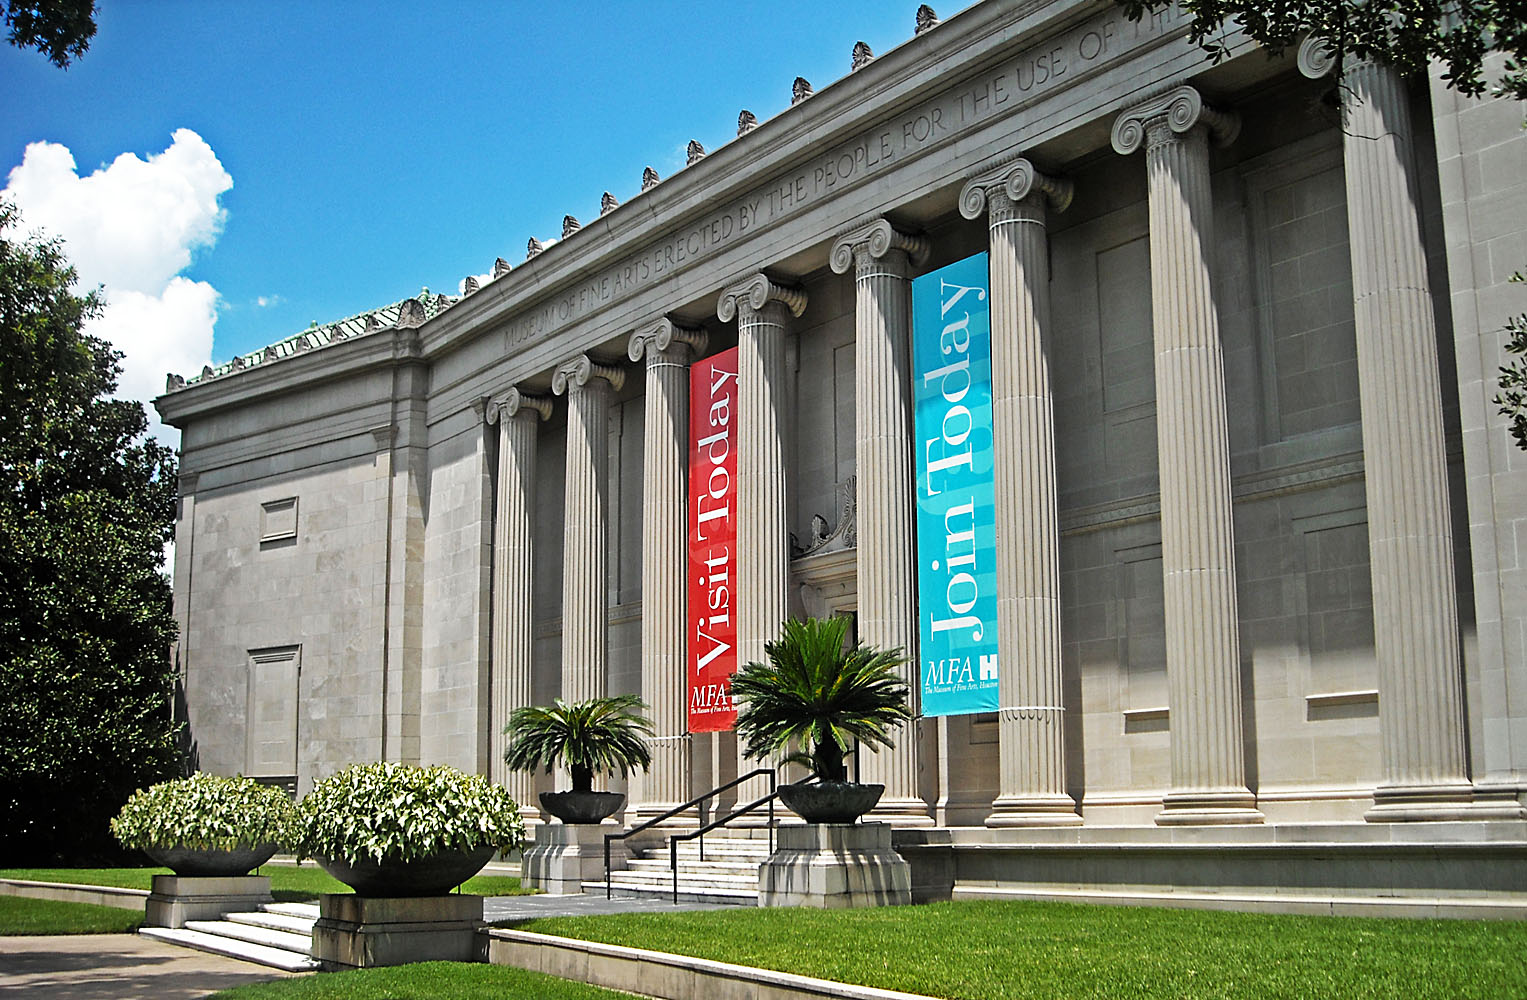 Museum of Fine Arts, Houston, Watkin Building, 2011. Foto met dank aan Hequals2henry, CC BY-SA 3.0